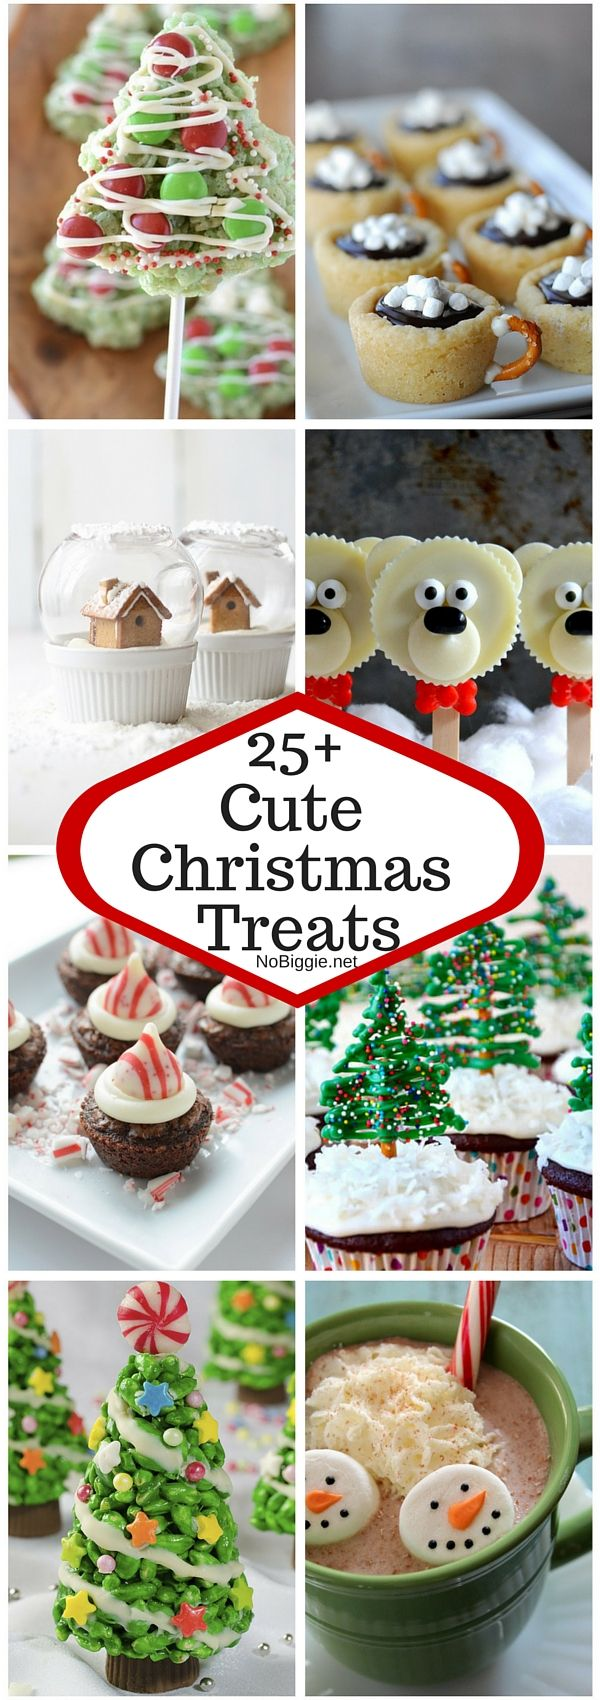 102 best christmas delights images on pinterest conch fritters 25 cute christmas treats solutioingenieria Choice Image